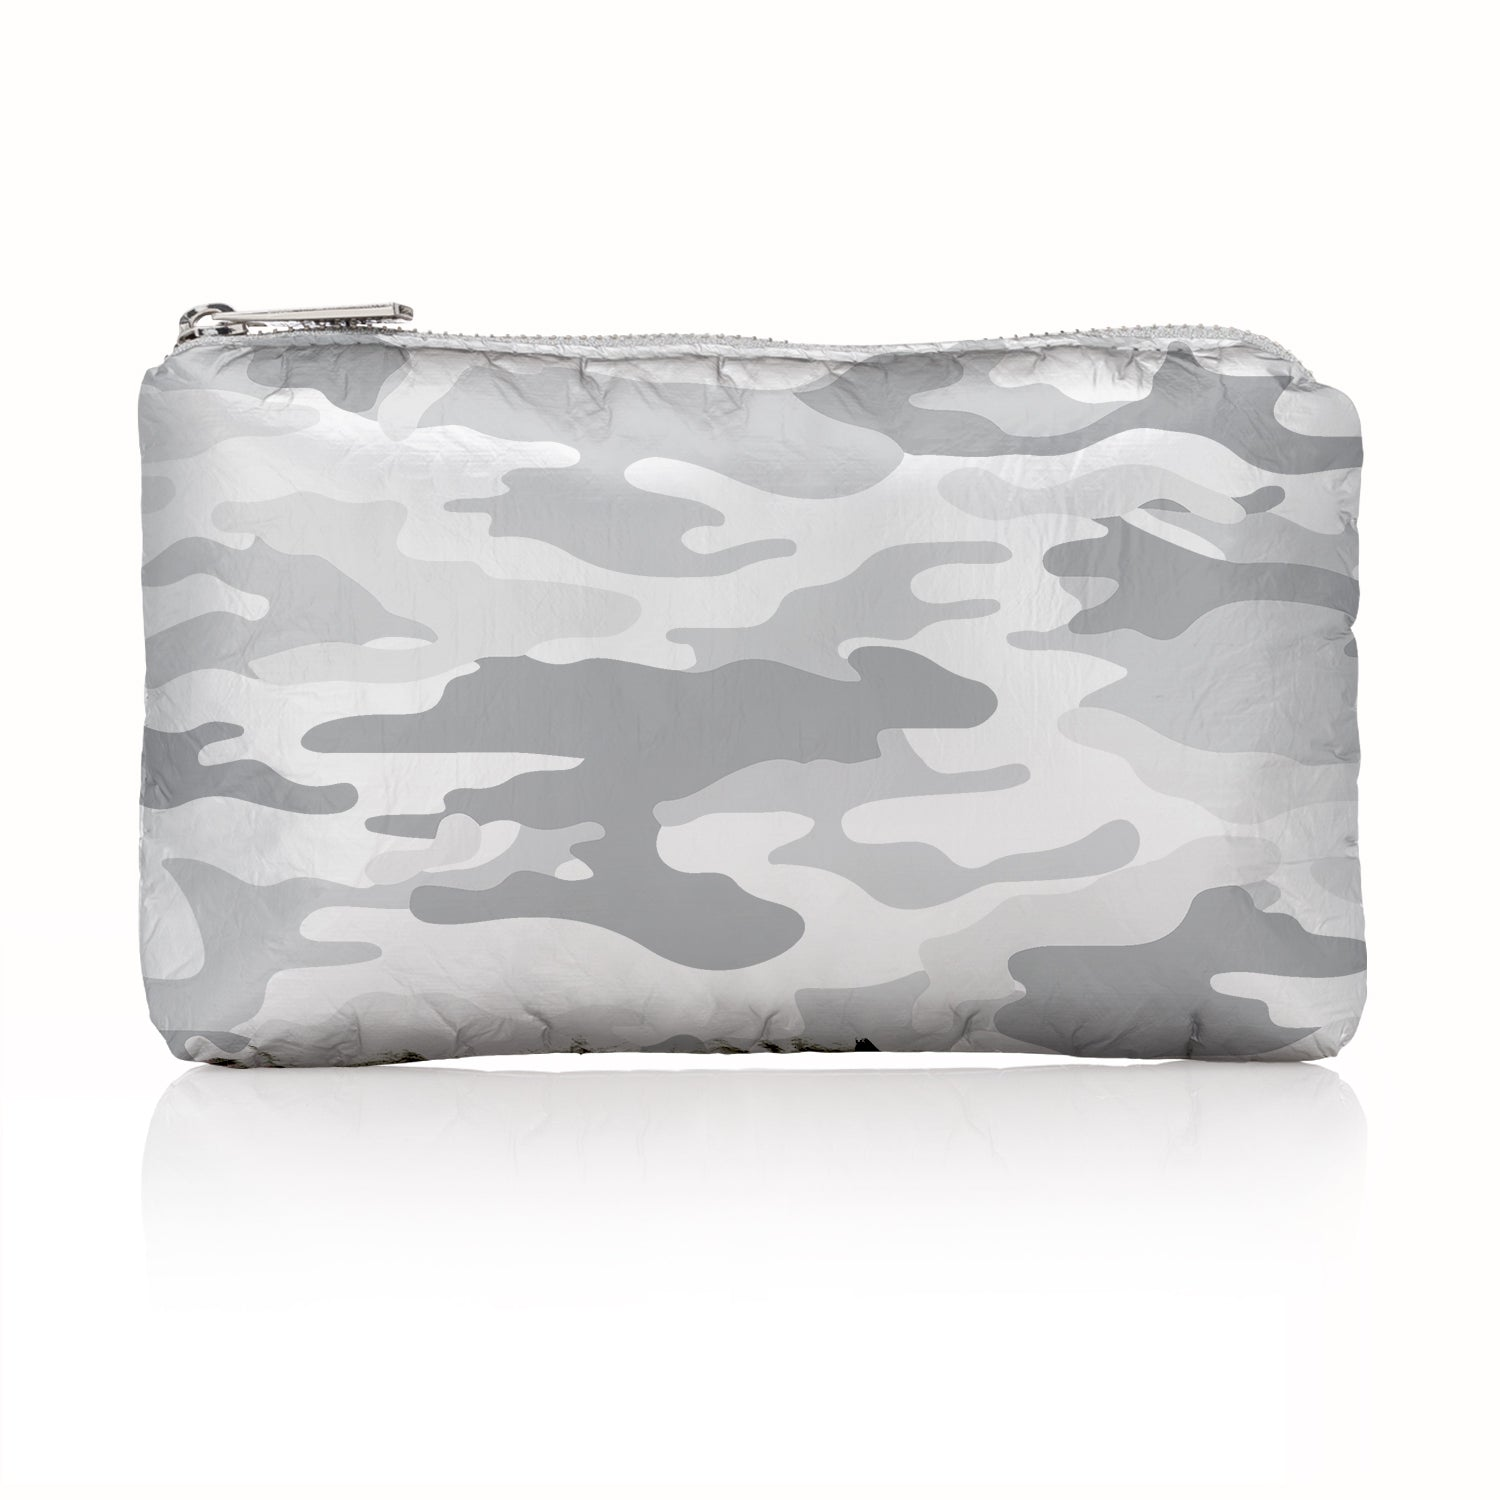 Camo Clutch - Camo Travel Bag - Camo Makeup Bag - Mini Pack - Metallic Silver Camo